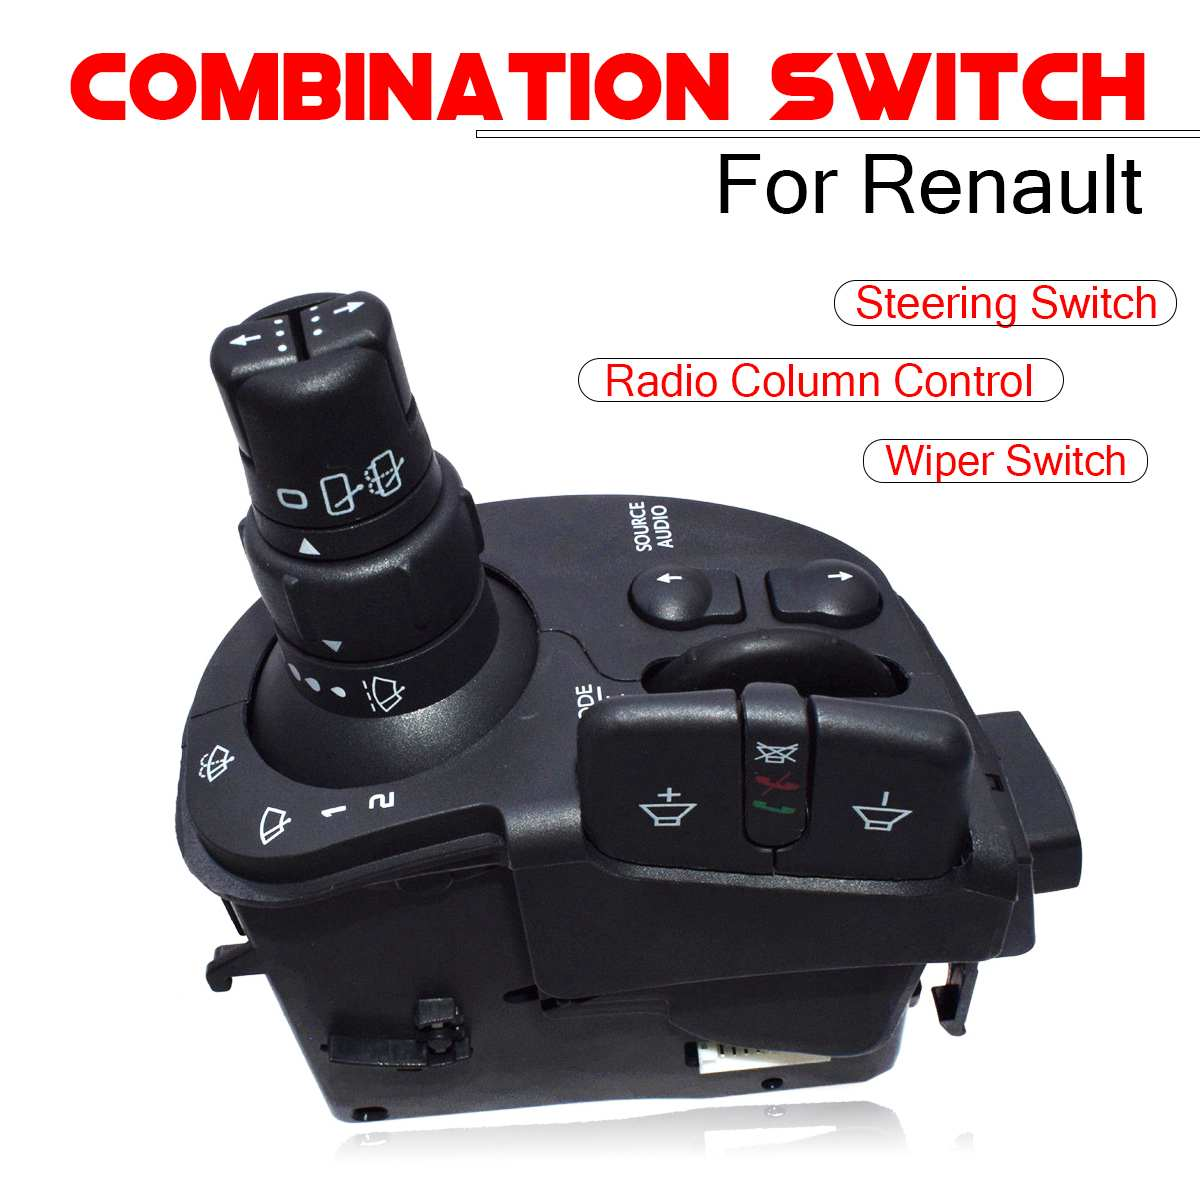 Wiper Radio Steering Column Combination Car Switch 8201590631 For Renault Clio Kangoo Modus Auto Replacement Switches Parts